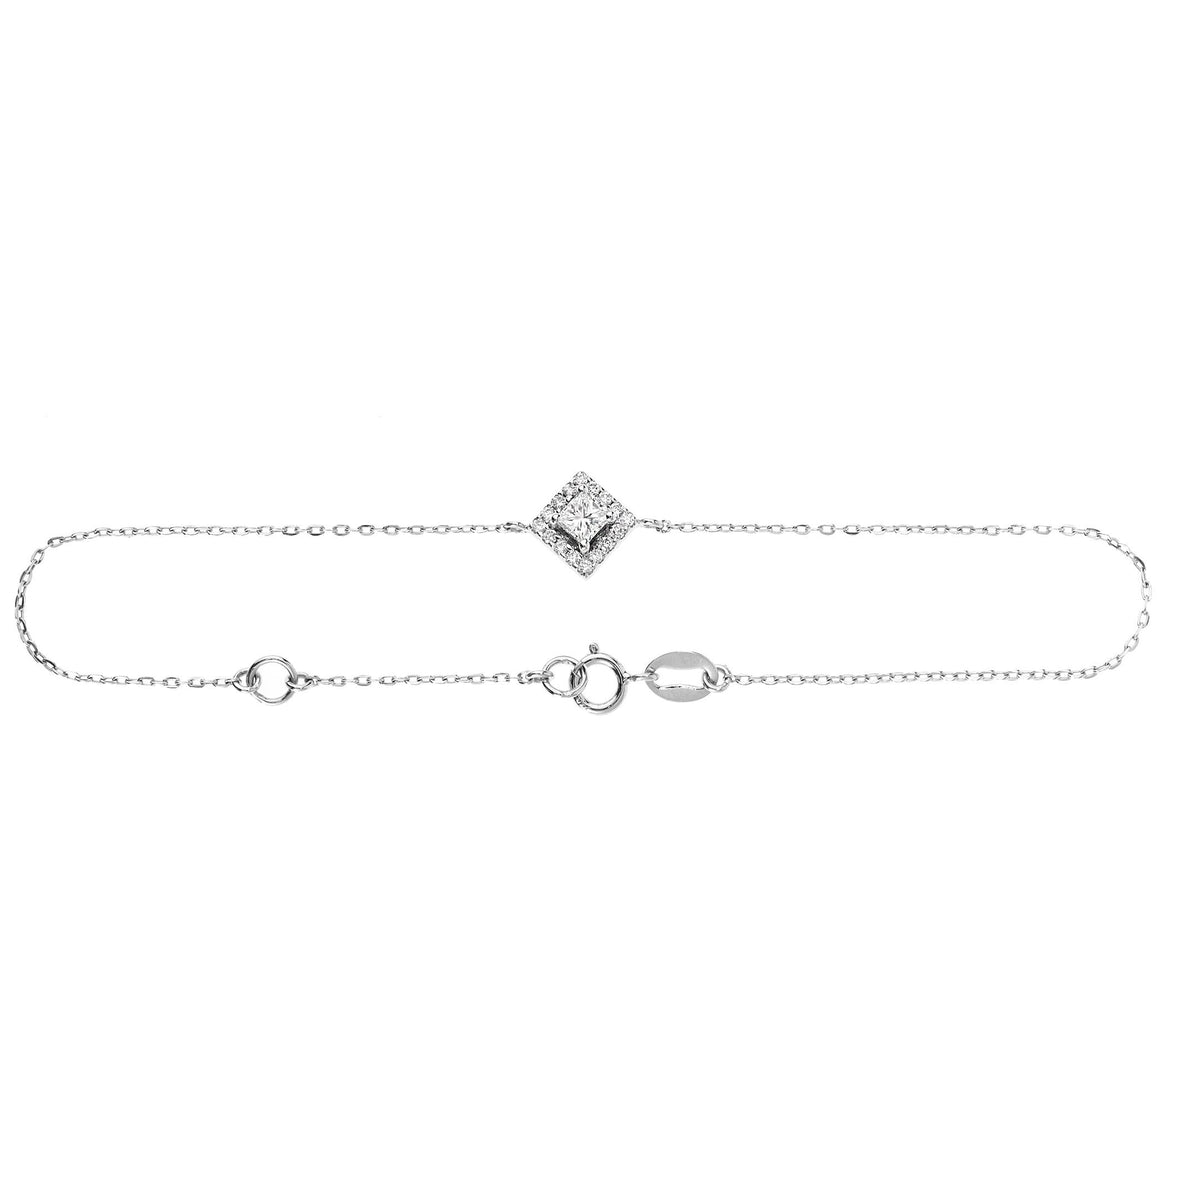 Dainty Diamond Bracelet In White Gold